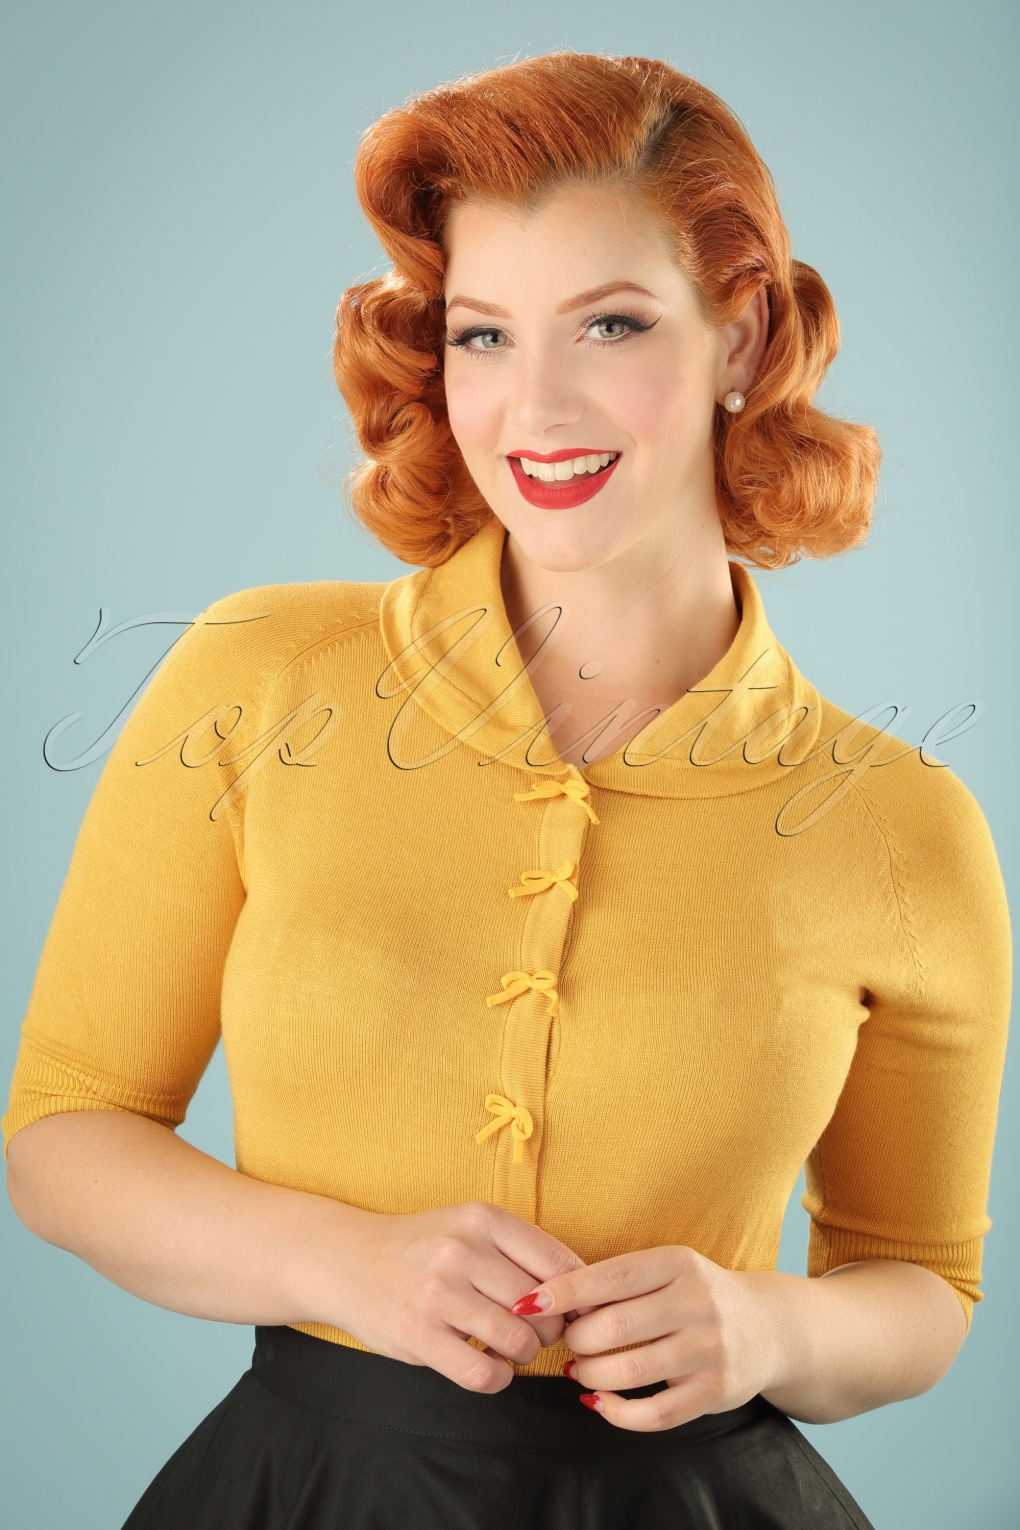 Vintage & Retro Shirts, Halter Tops, Blouses 40s April Bow Cardigan in Mustard Yellow £34.53 AT vintagedancer.com